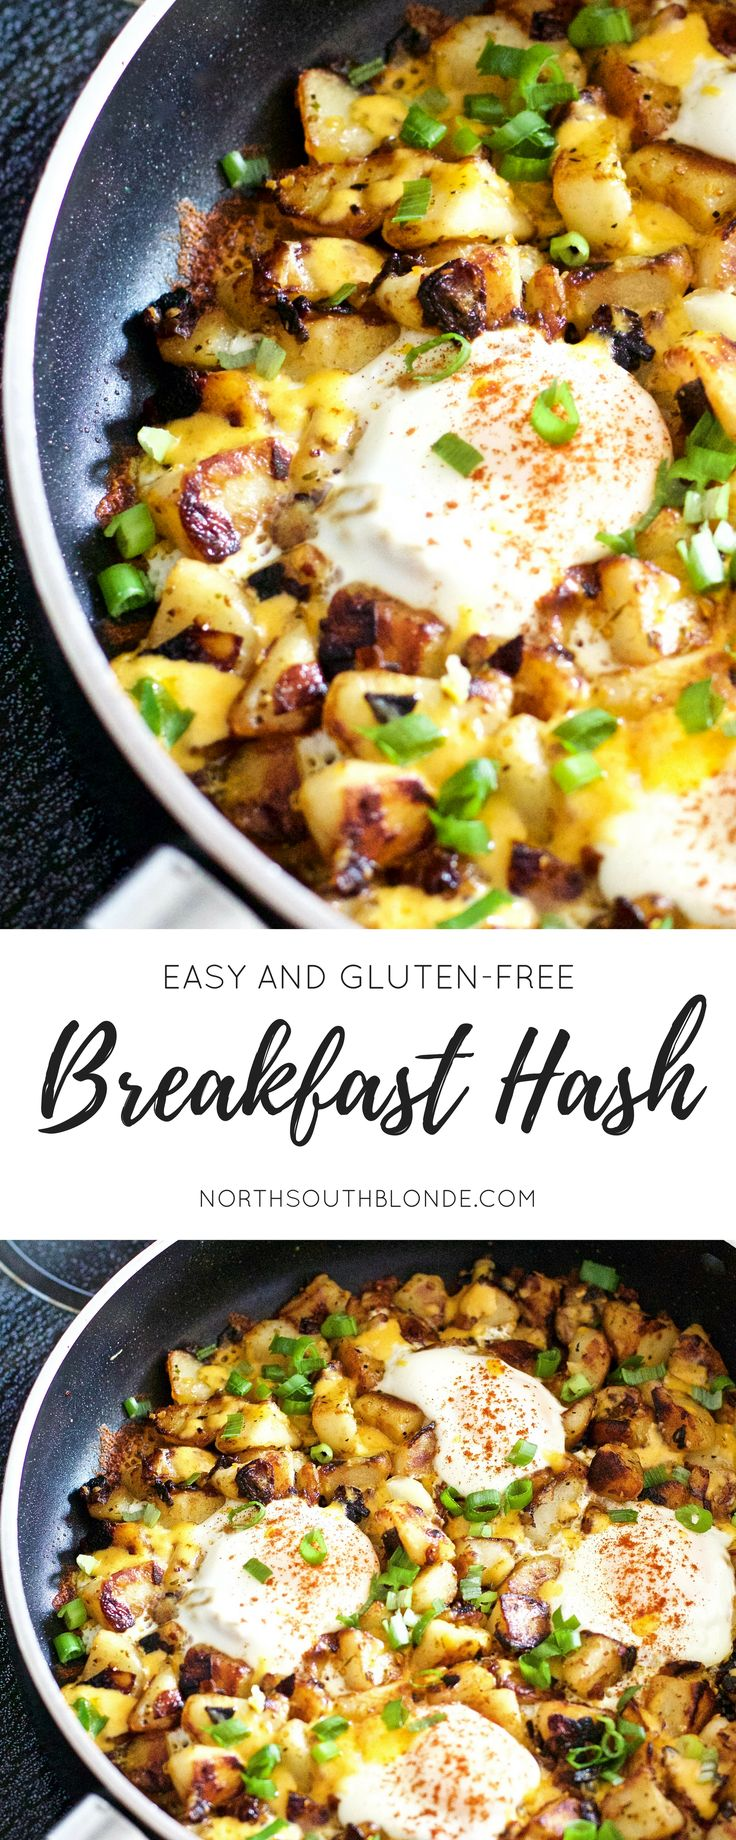 Scrumptious, hearty, full of protein breakfast hash that is sure to coat the stomach after a fun date night ;) Super easy to make, and oh so cheesy! Recipe | Fast | Quick | Eggs | Breakfast | Brunch | Lunch | One Pan | One Pot | Potatoes | Cheese | Paprika | Poached | Over Easy | Well Done |